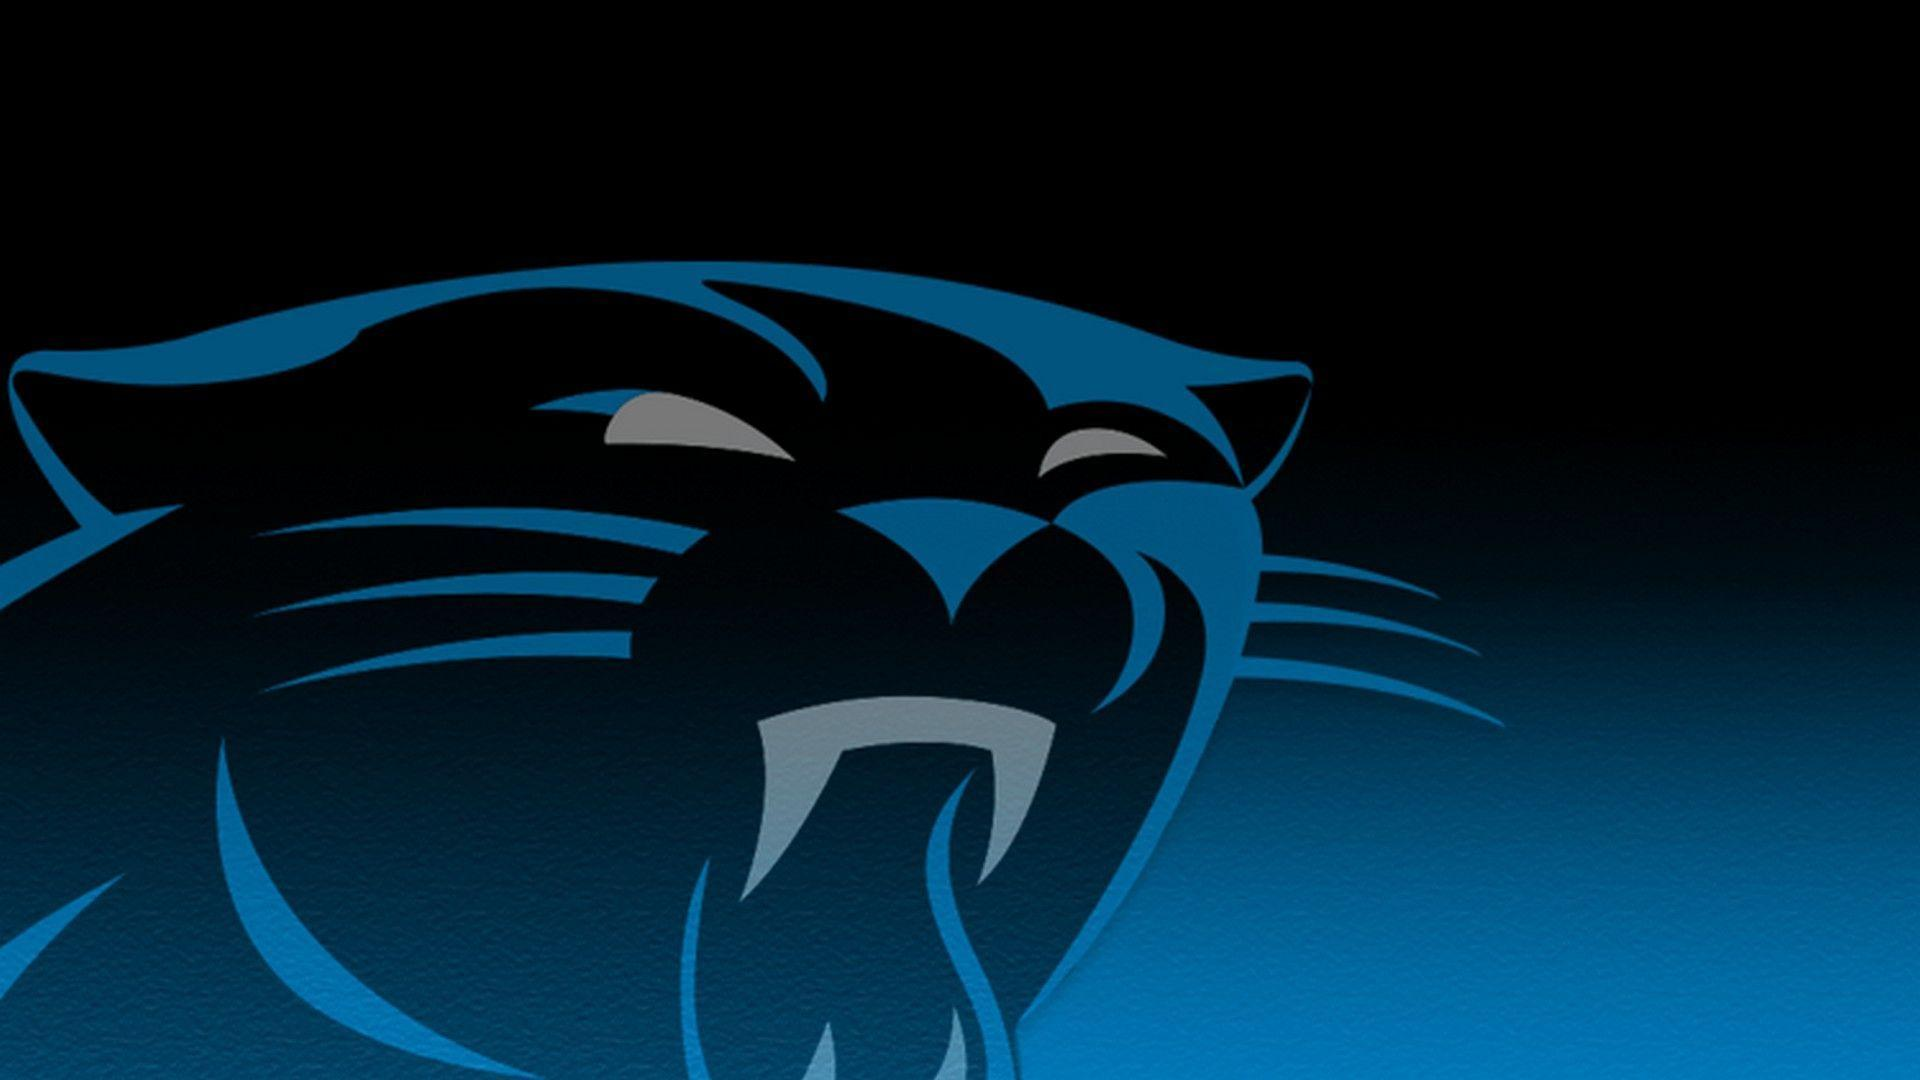 Carolina Panthers Wallpapers For Mac Backgrounds